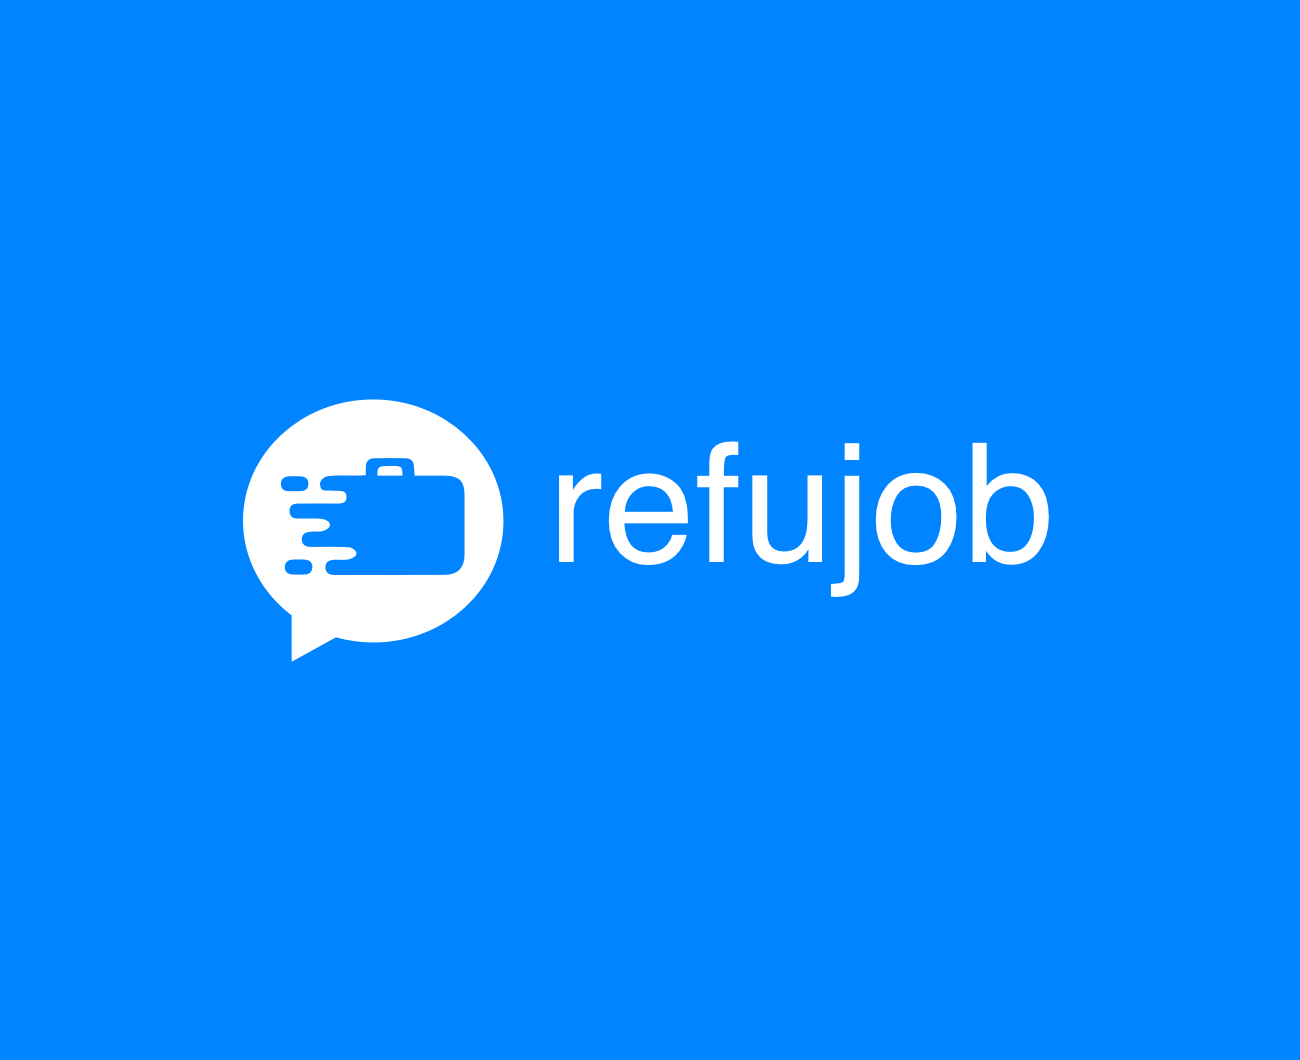 Careers for Refugees via Chat Bot